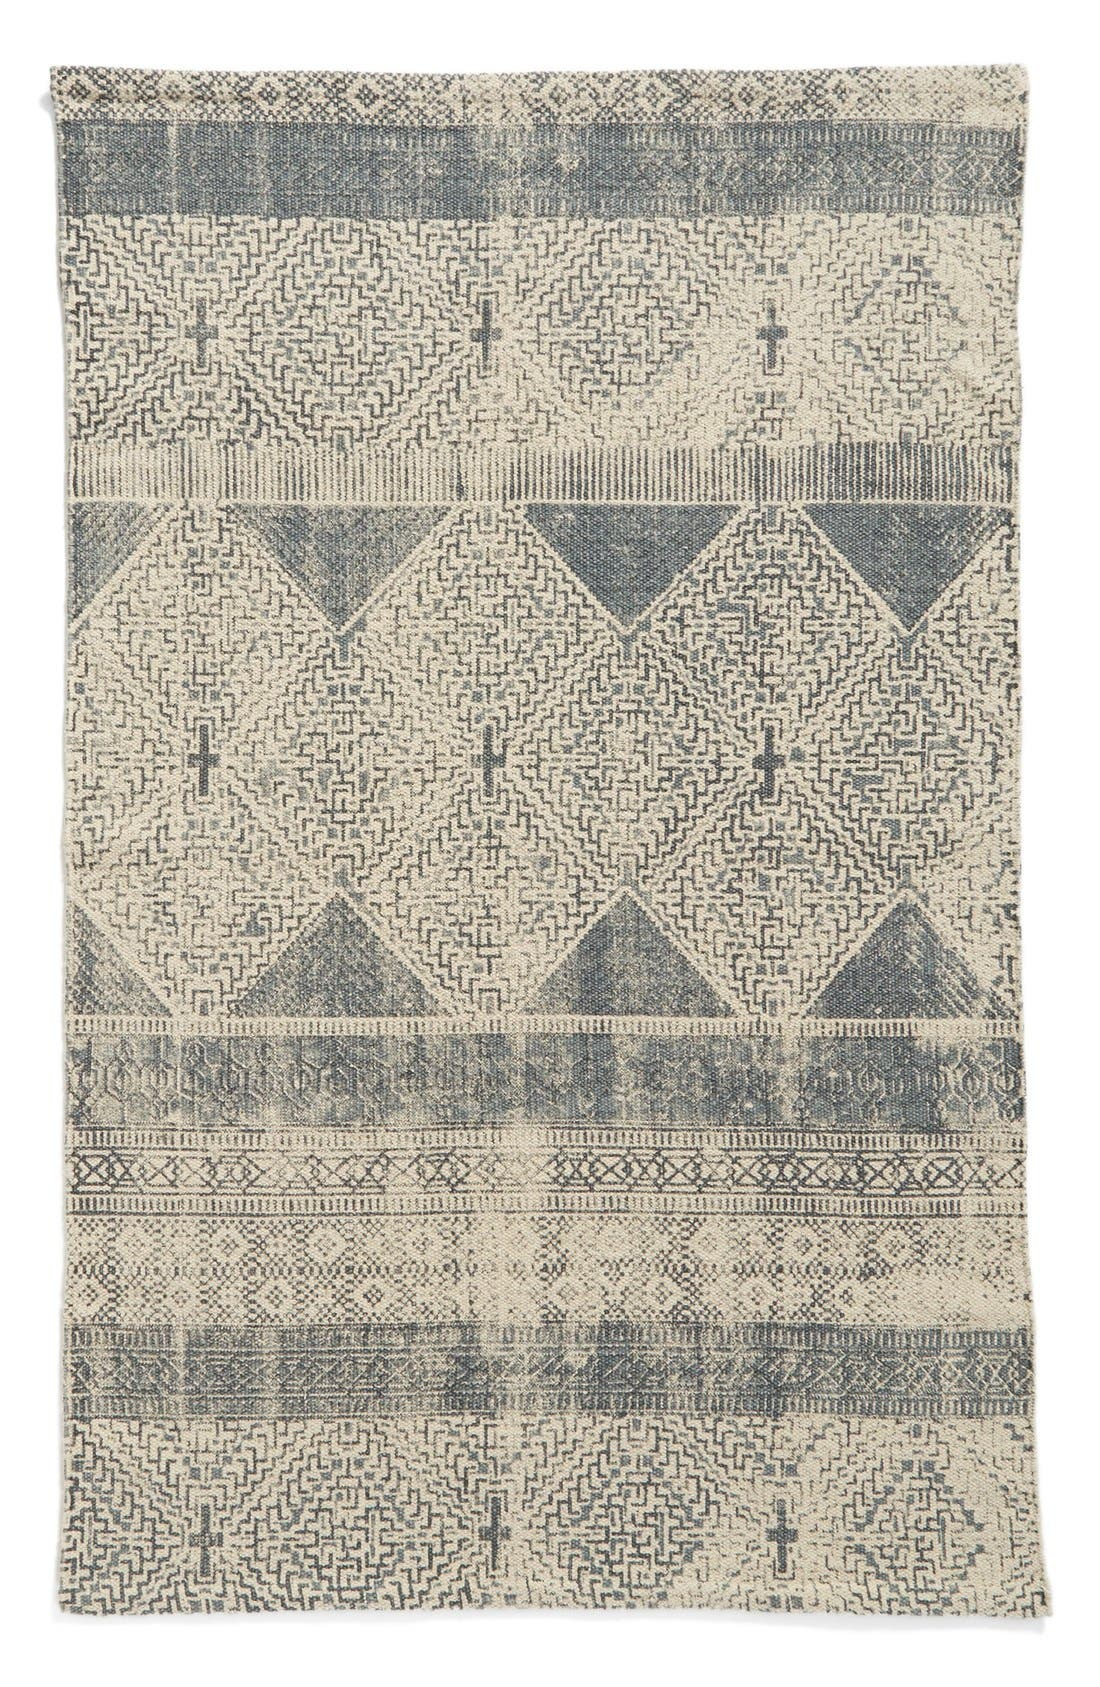 Alternate Image 1 Selected - Loloi Makenna Handwoven Scatter Rug